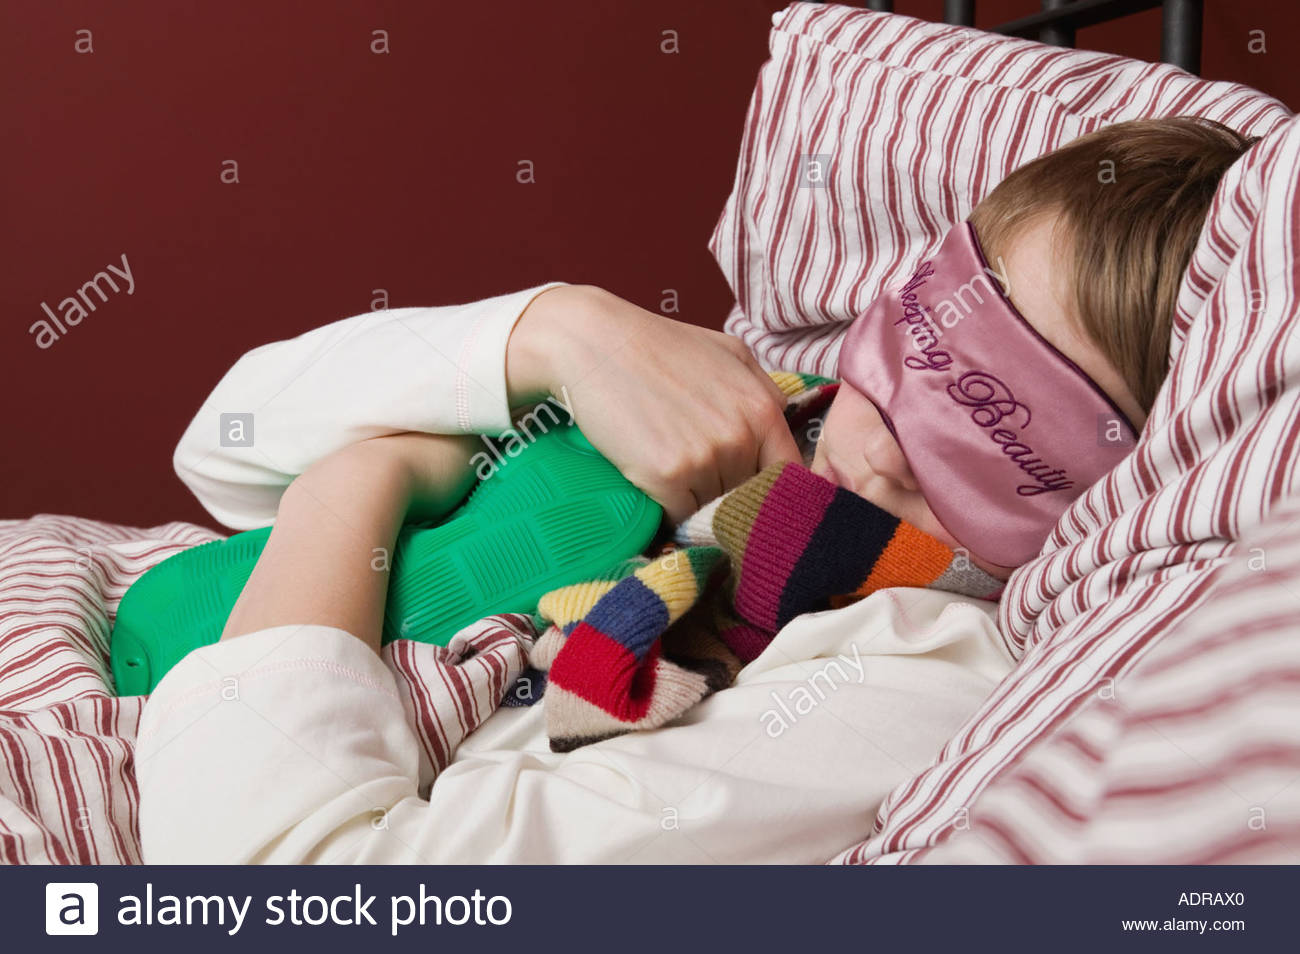 Girl sleeping with a hot water bottle - Stock Image